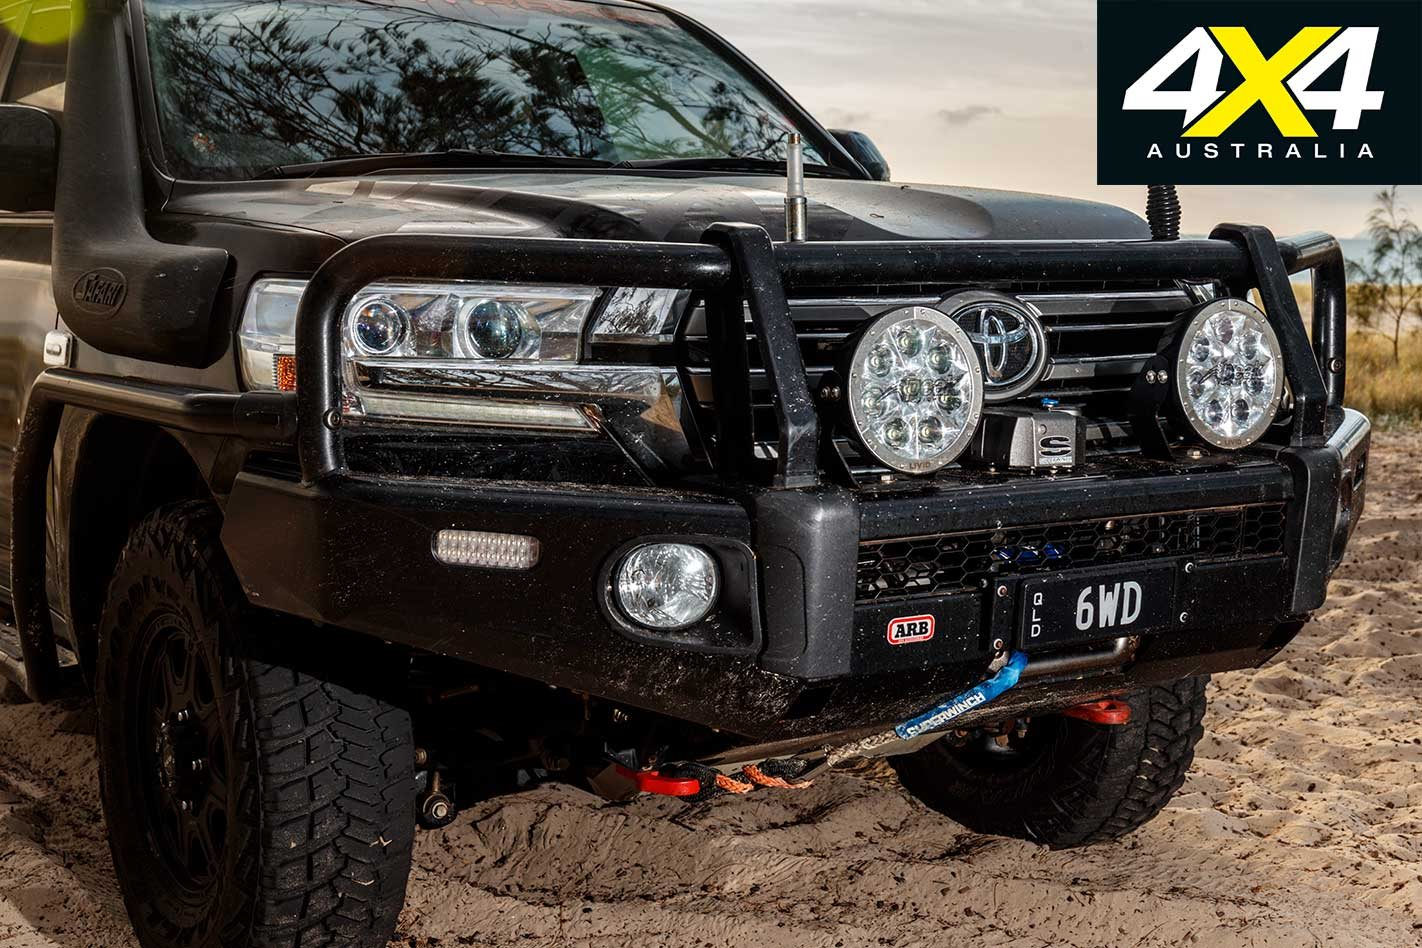 Custom Toyota Land Cruiser 200 6x6 Review Lift Kit Exemplary Arb Has Been Plastered Across The Including Bullbar Side Rails And Steps